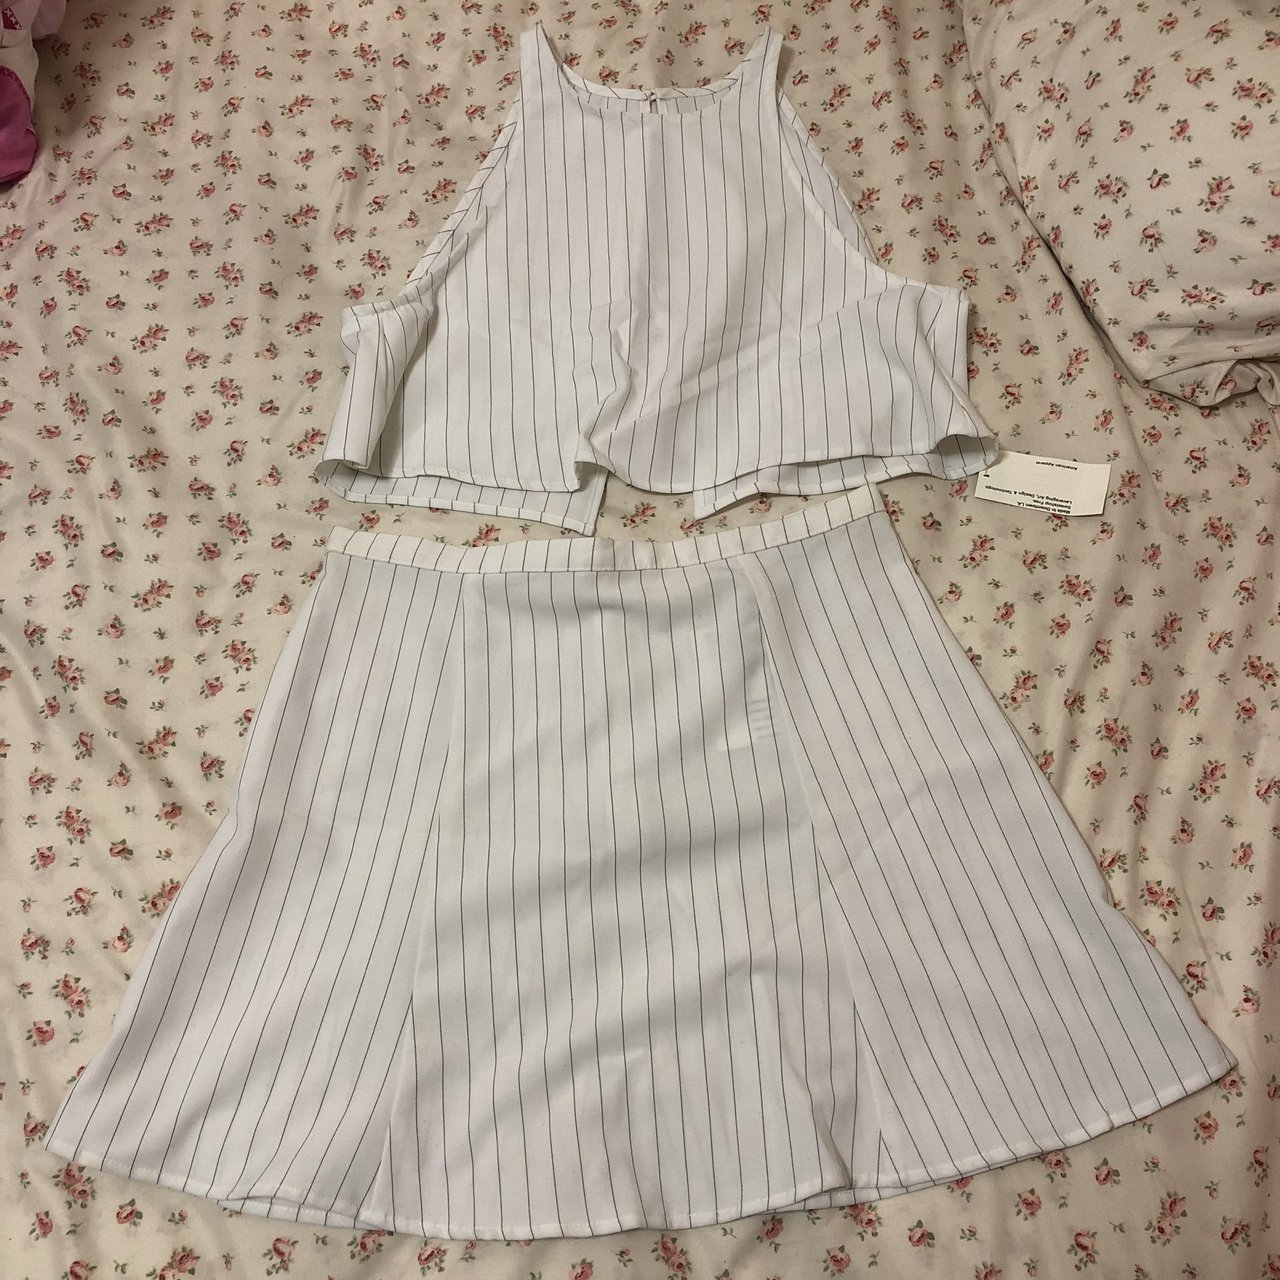 f8b8cac9cc American Apparel Lulu top and Lolita skirt in white with The - Depop